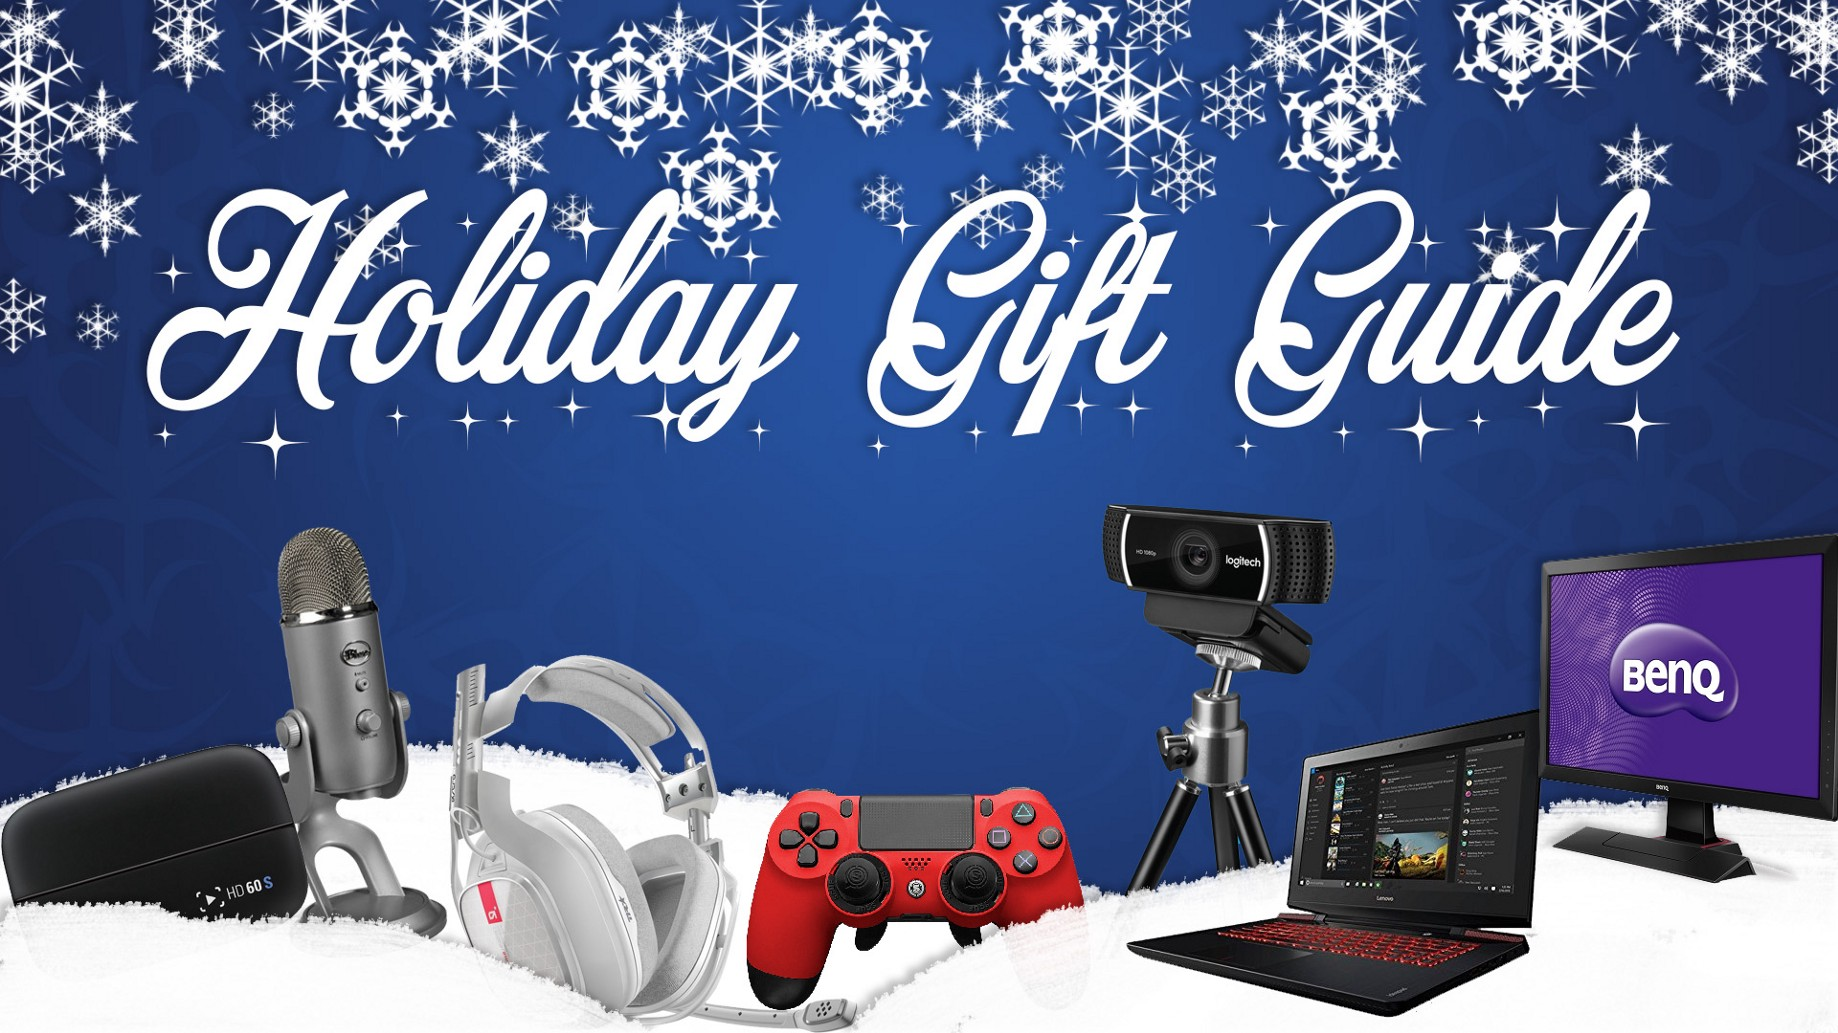 Content Creator's Holiday Gift Guide 2016 — Part 2: Mid